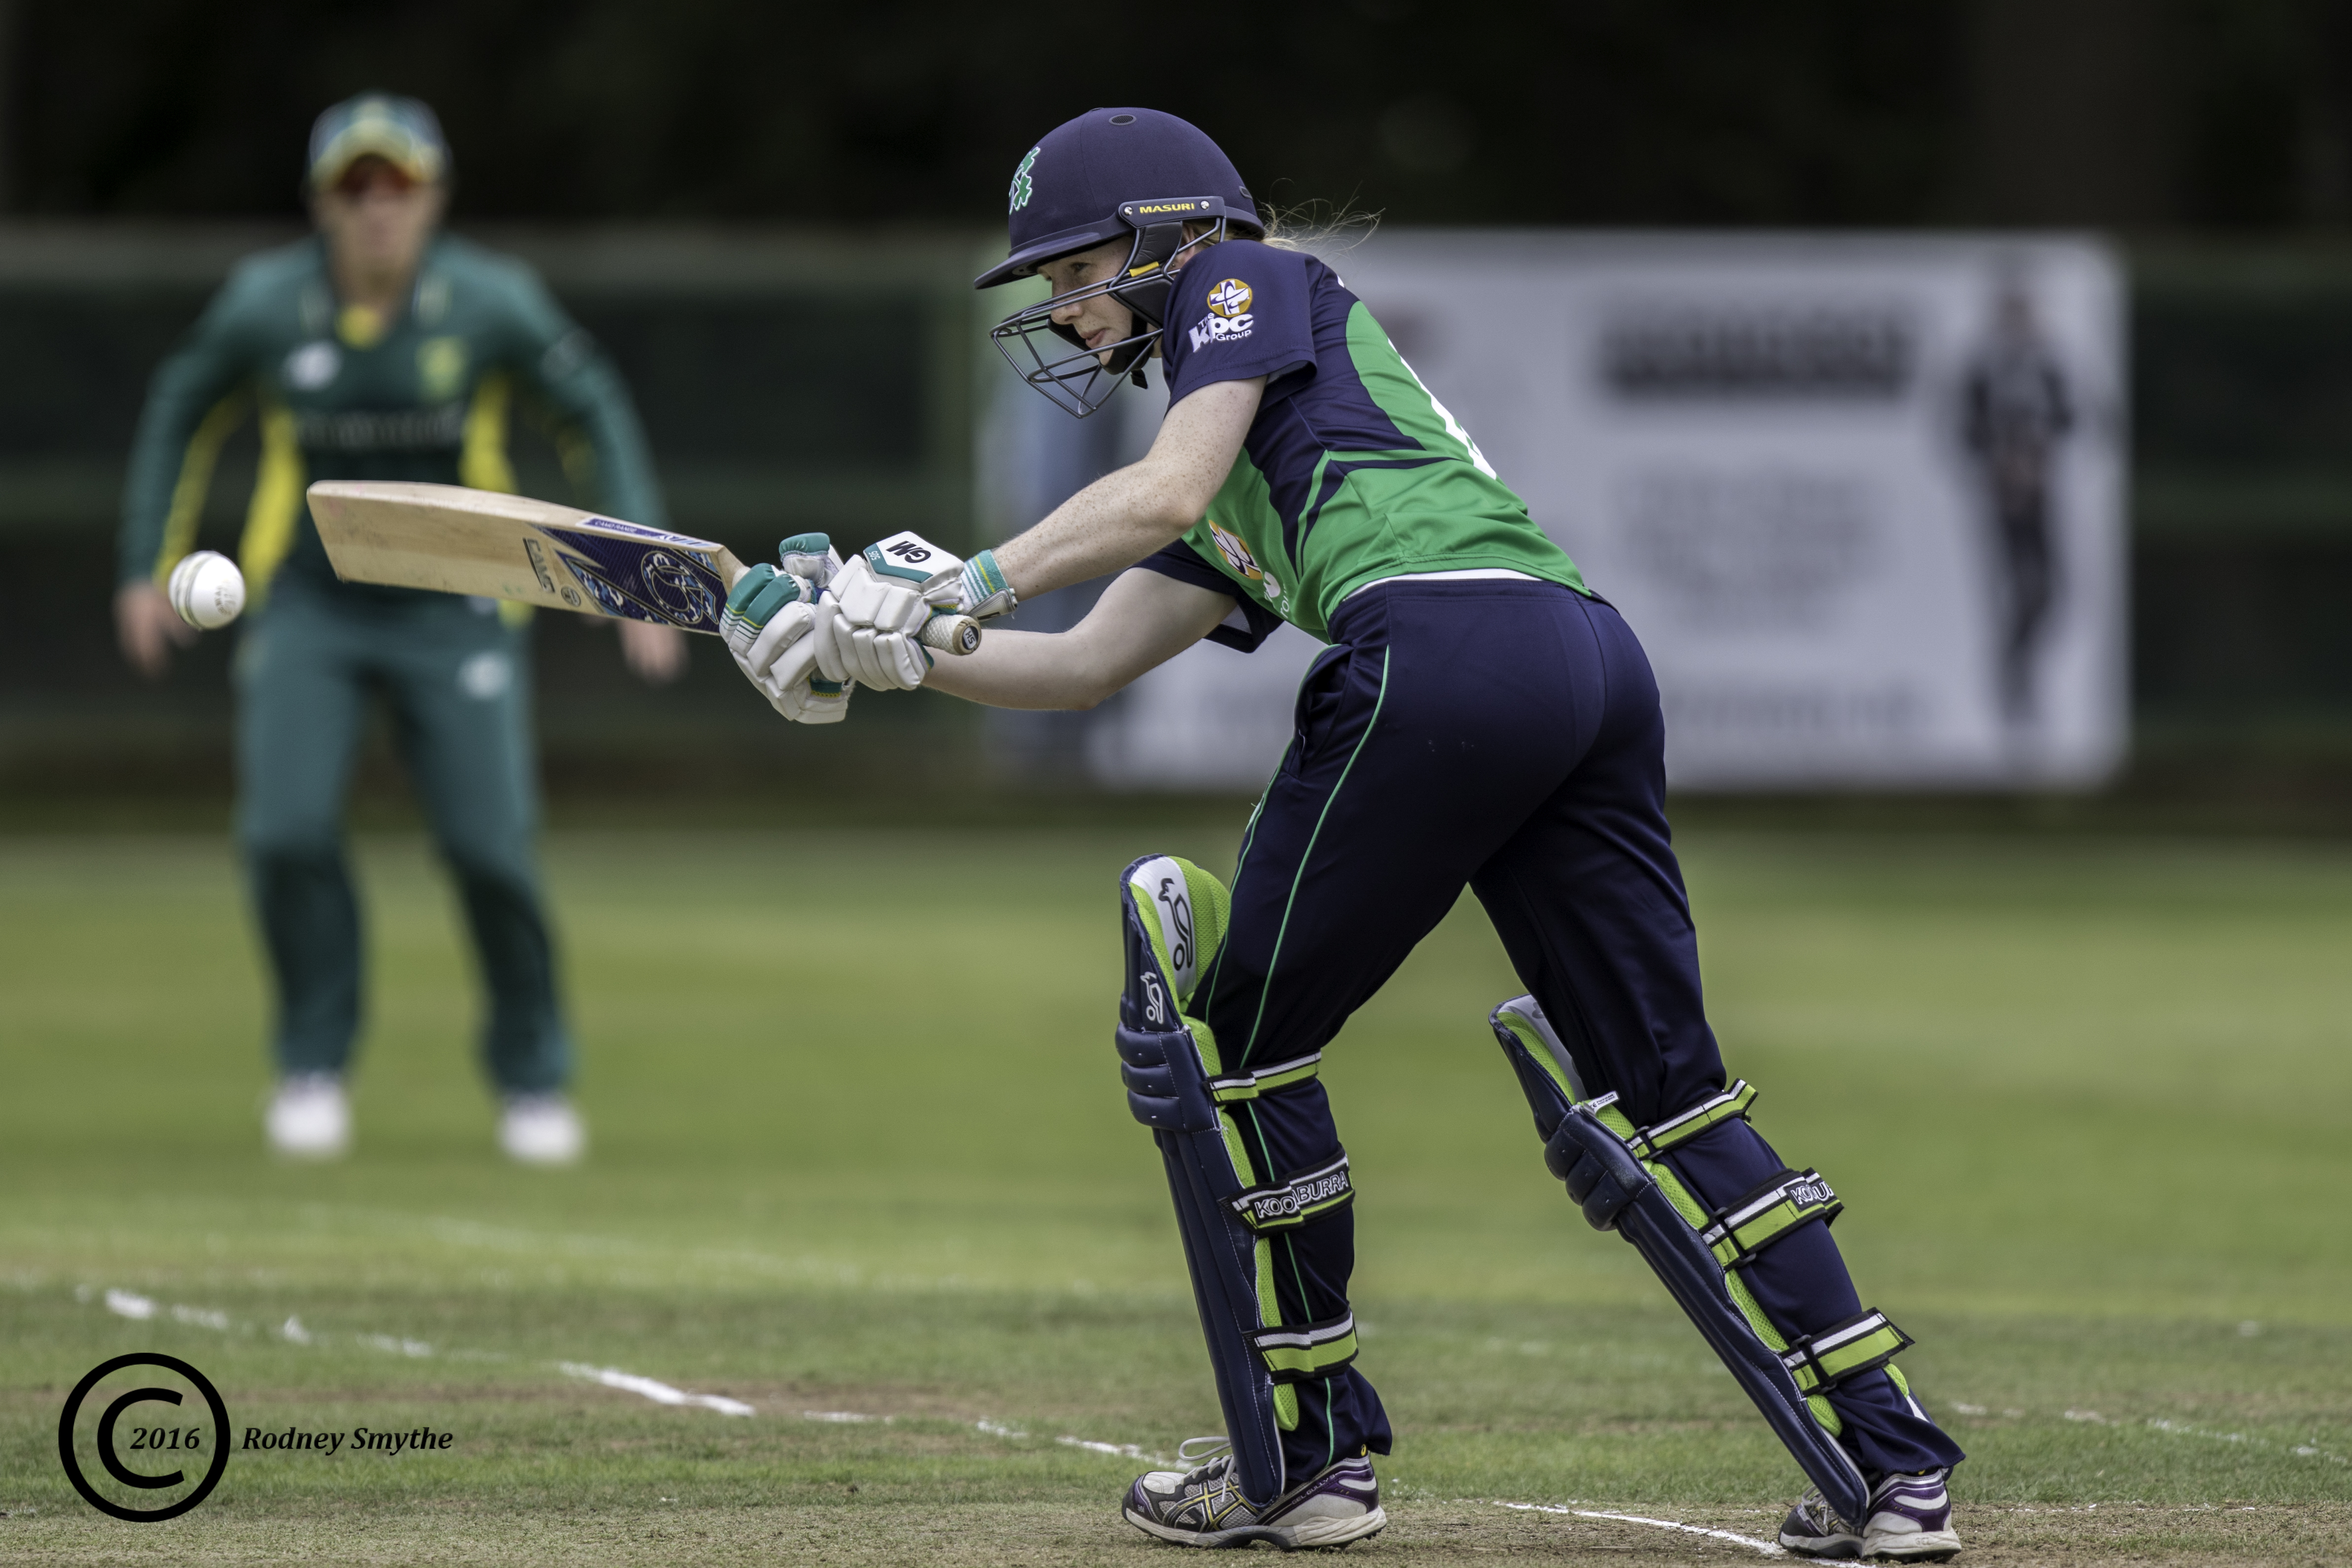 IRELAND TO PLAY QUADRANGULAR SERIES IN SOUTH AFRICA